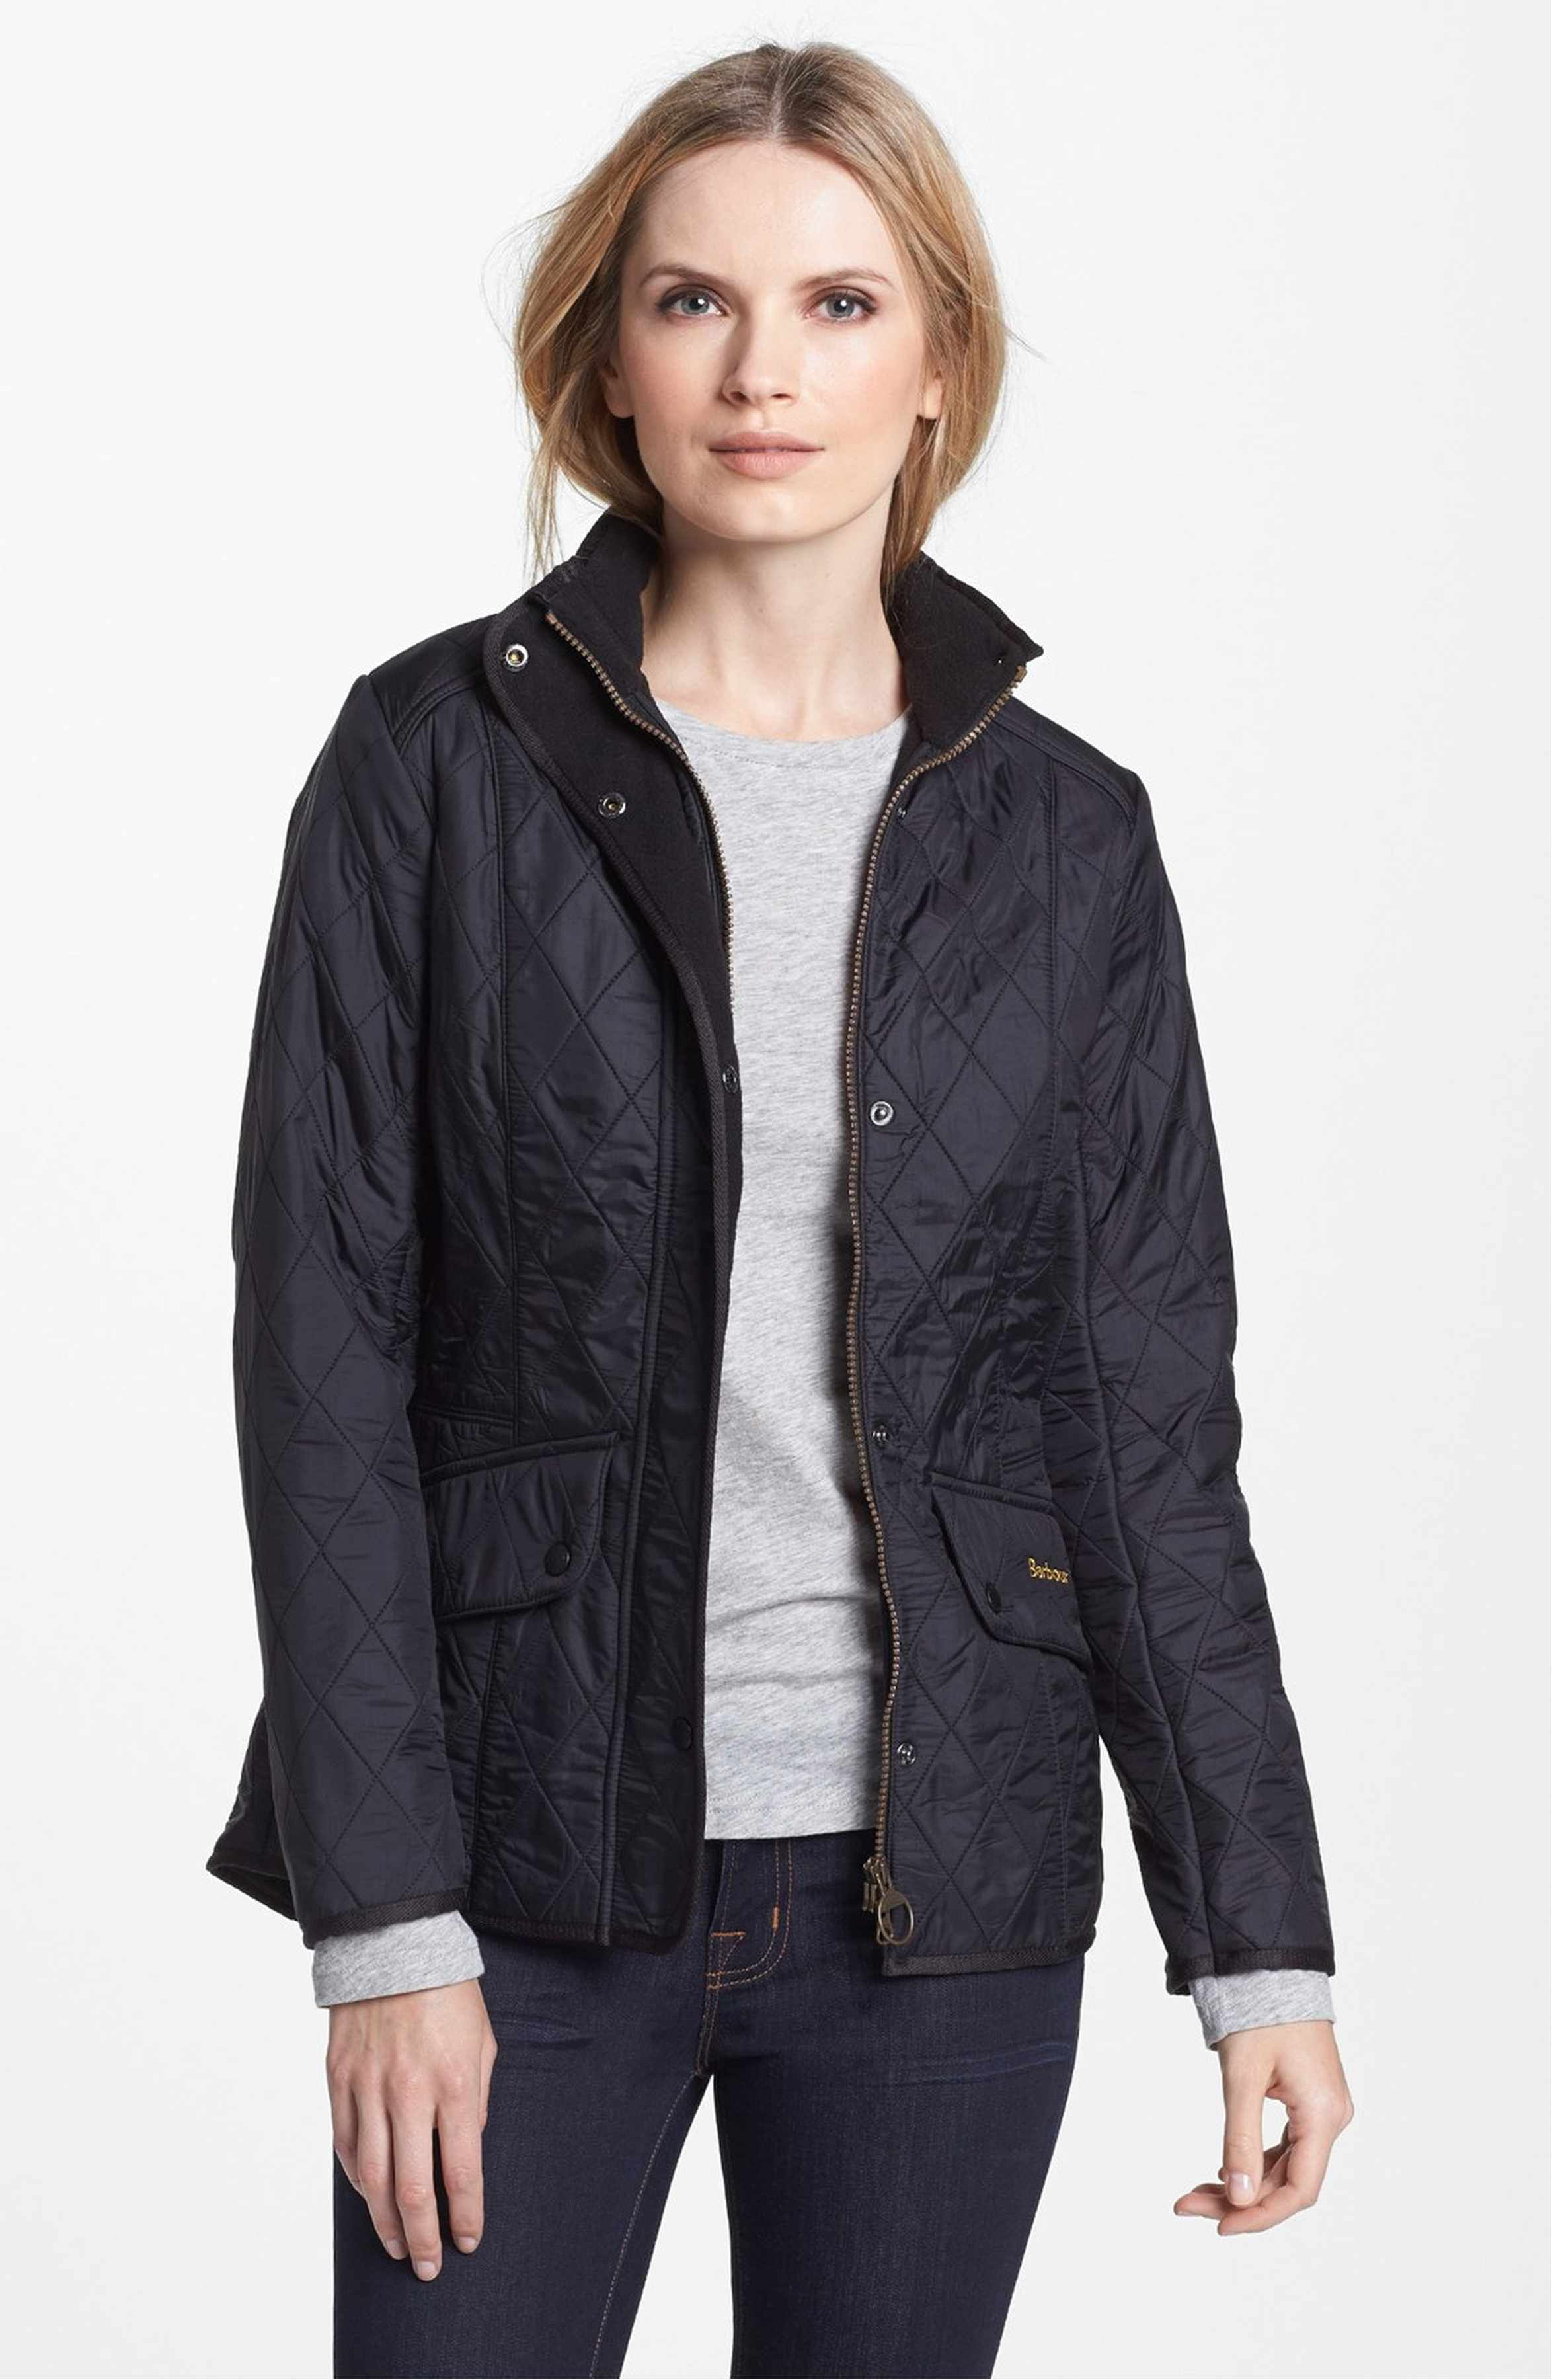 quilted jacket navy in mens jackets barbour quilt product video holme